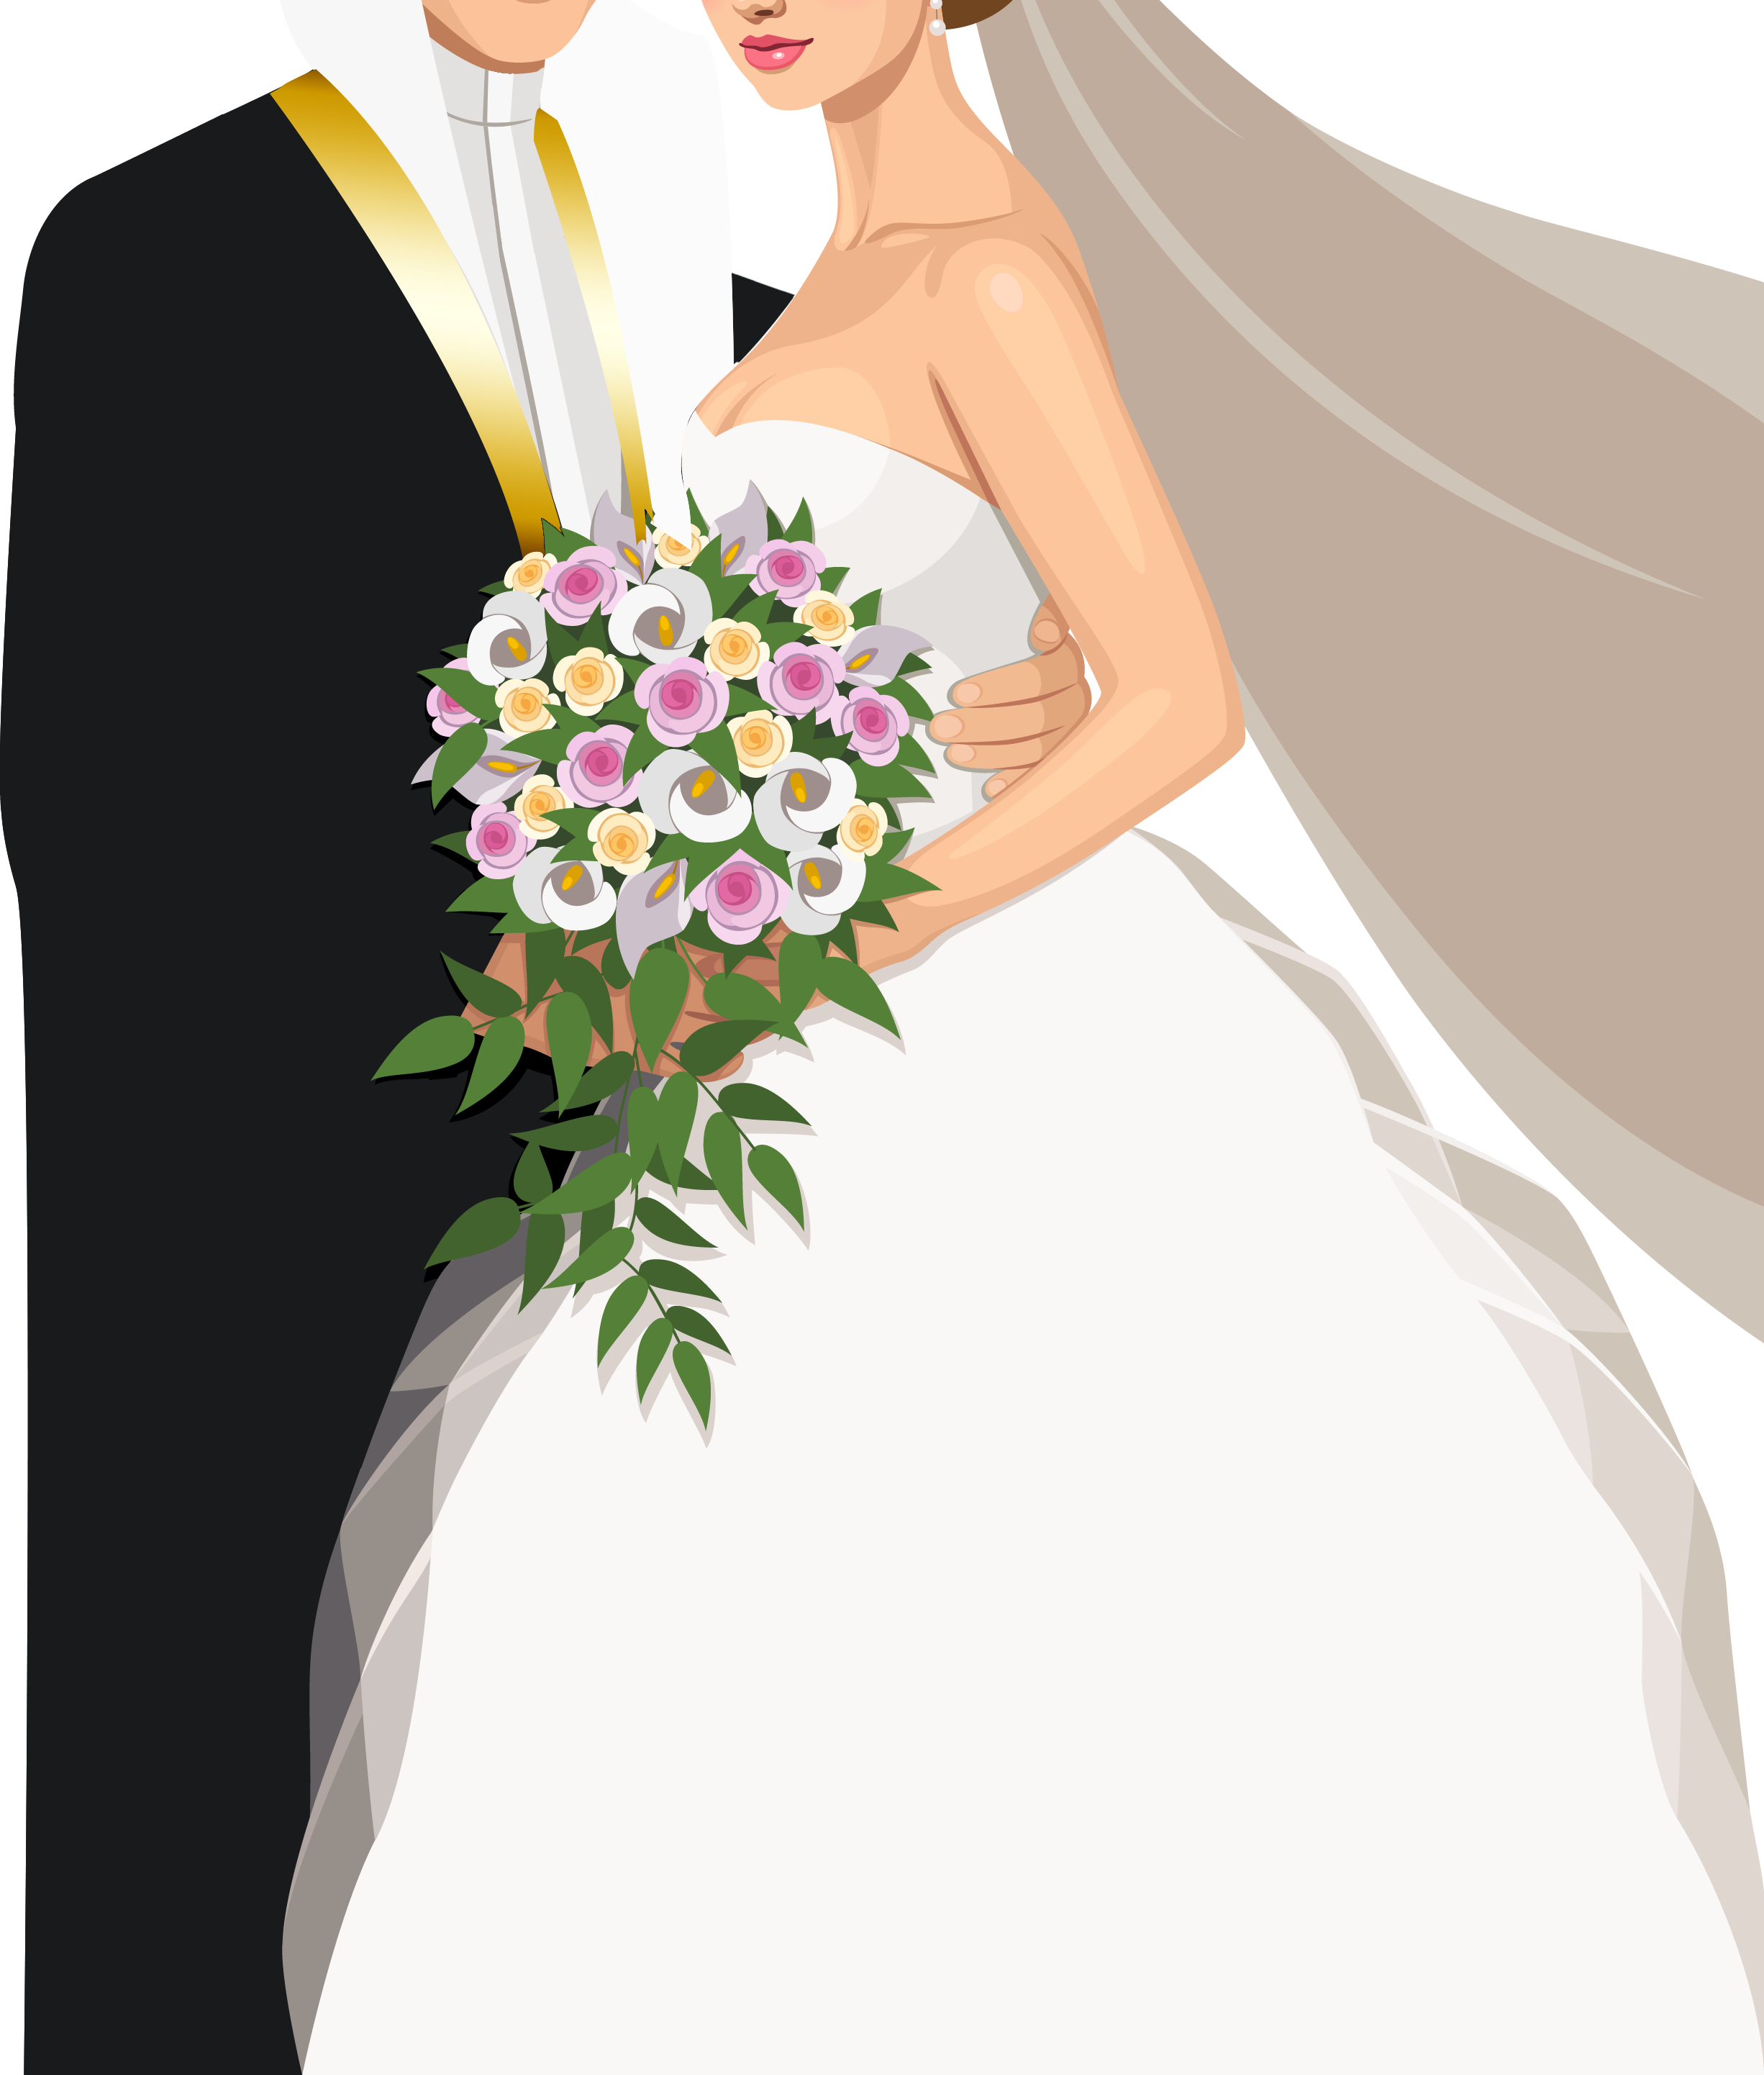 Pin By Neeha Mukadam On Resources Wedding Illustration Wedding Drawing Wedding Images